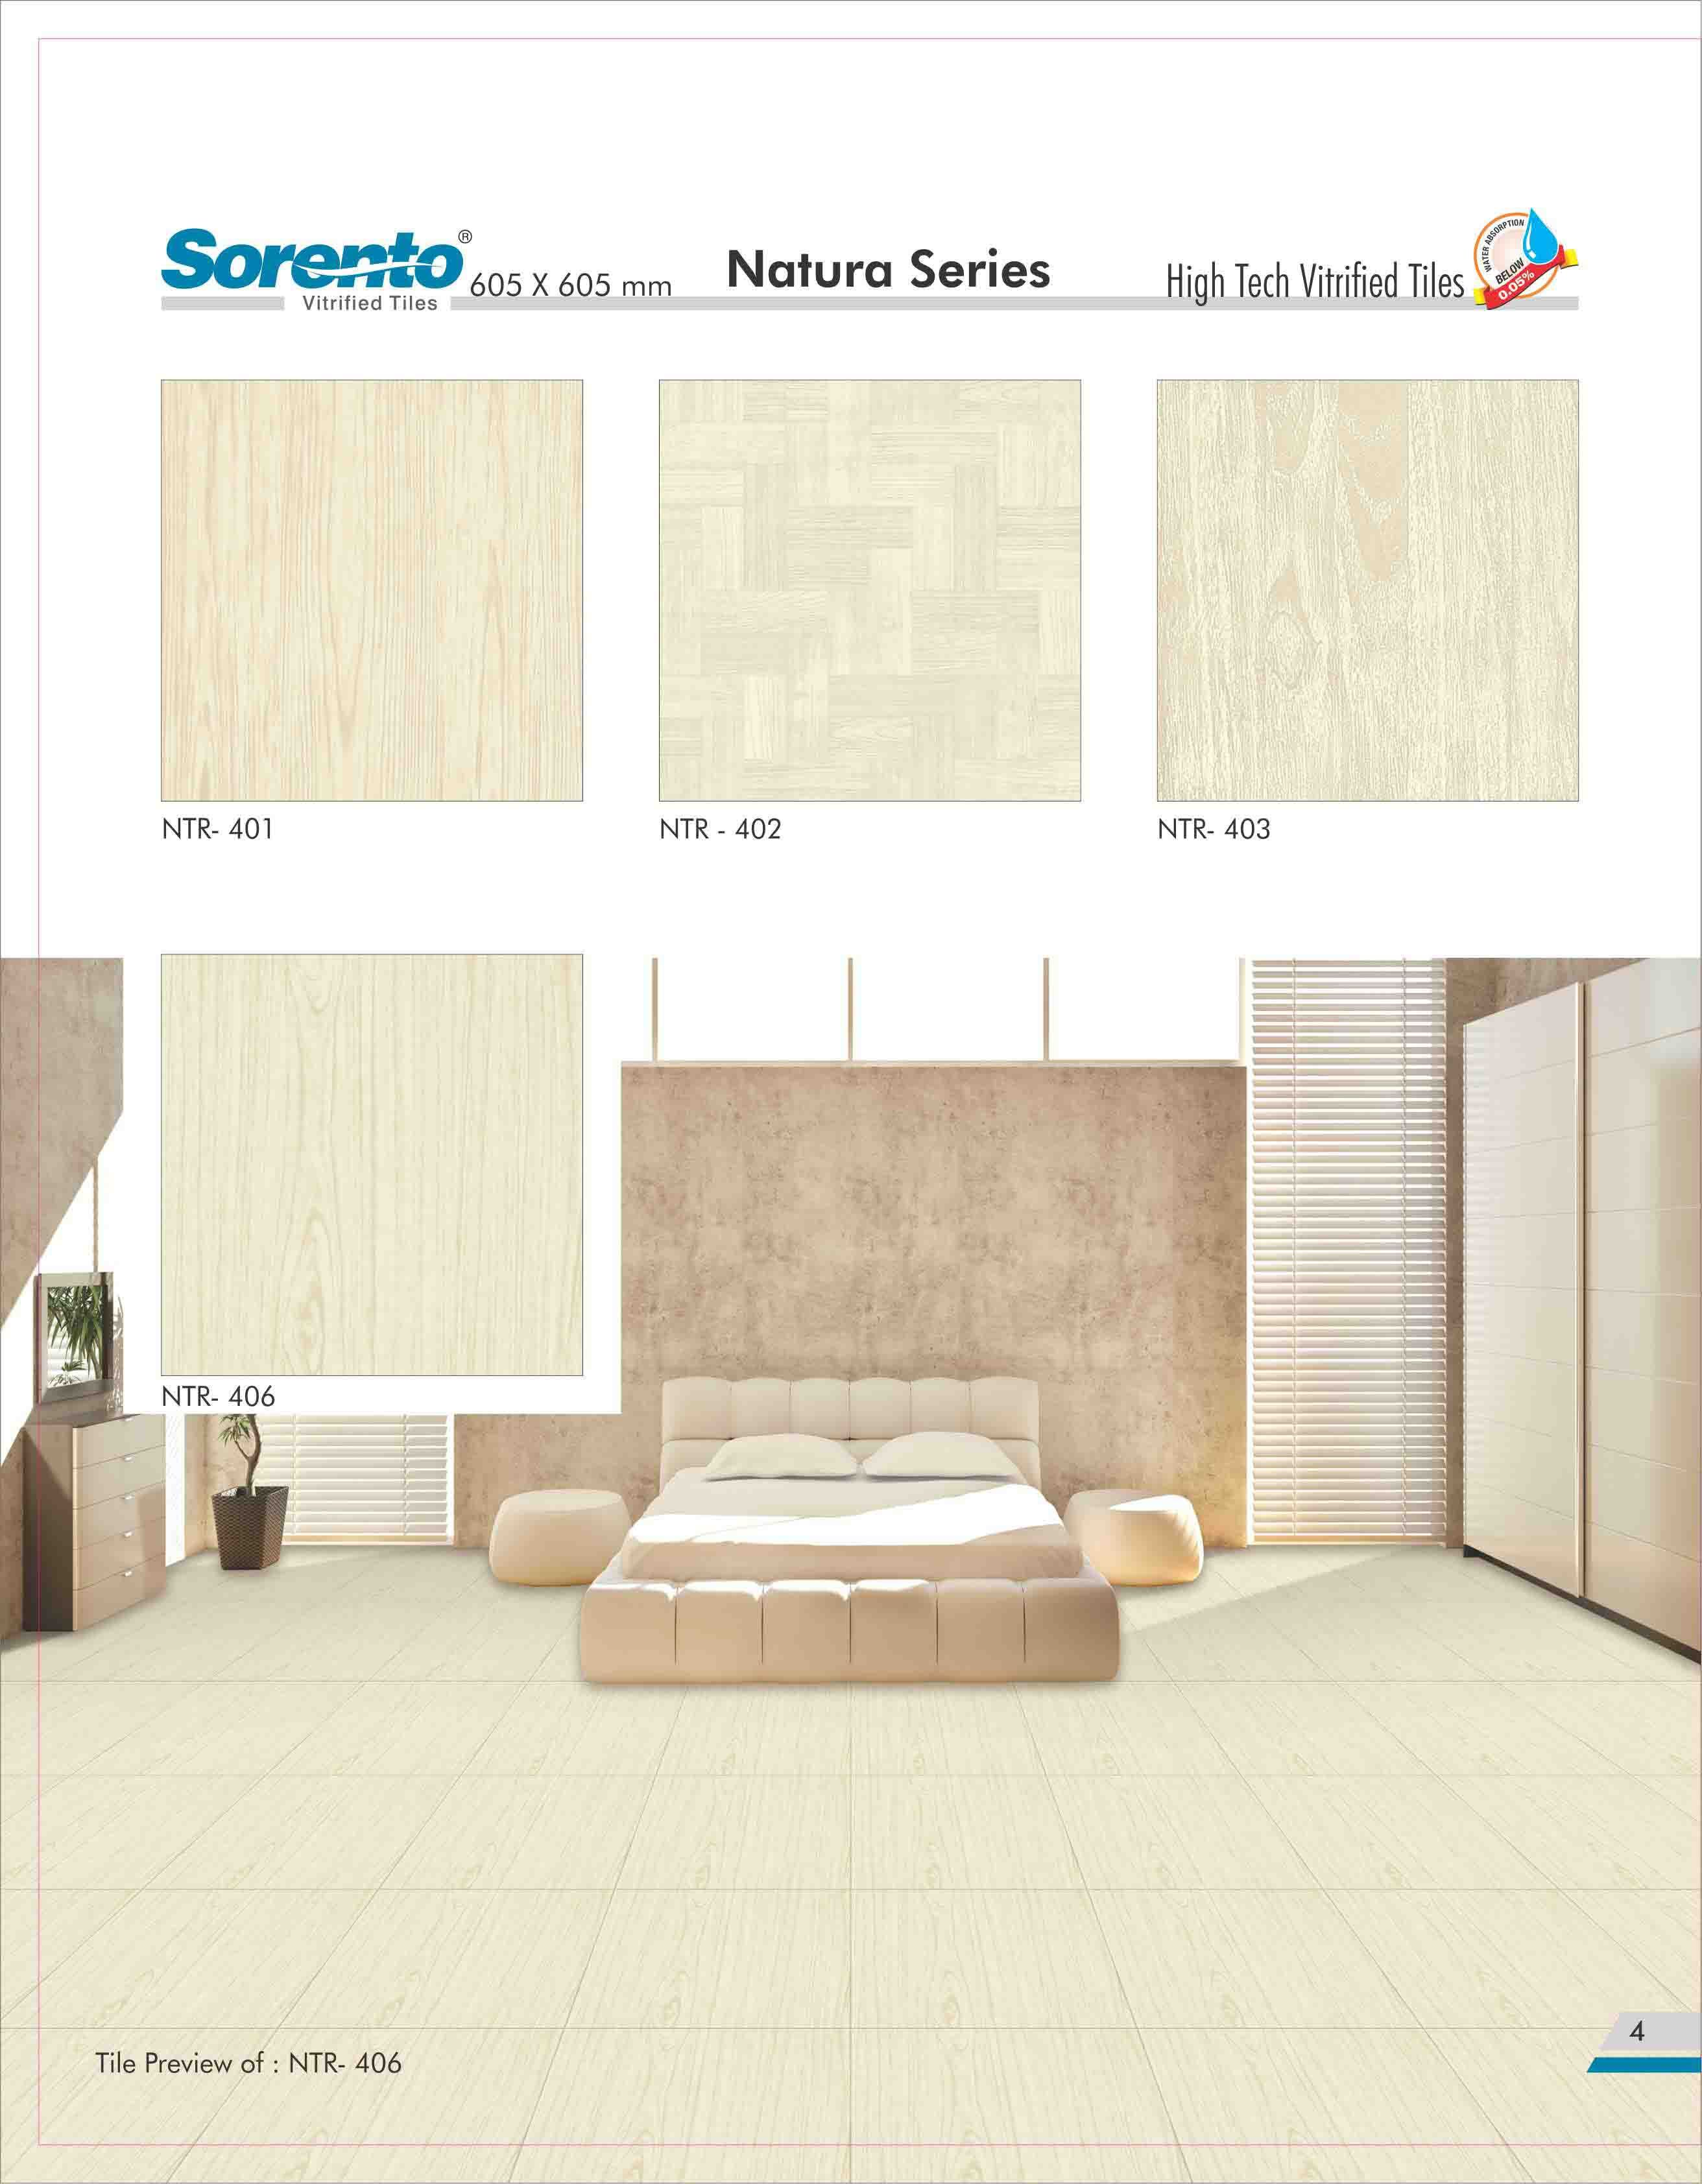 Pin by ceramic directory on sorento granito pvt ltd pinterest vitrified tiles tile design tile manufacturers dailygadgetfo Image collections